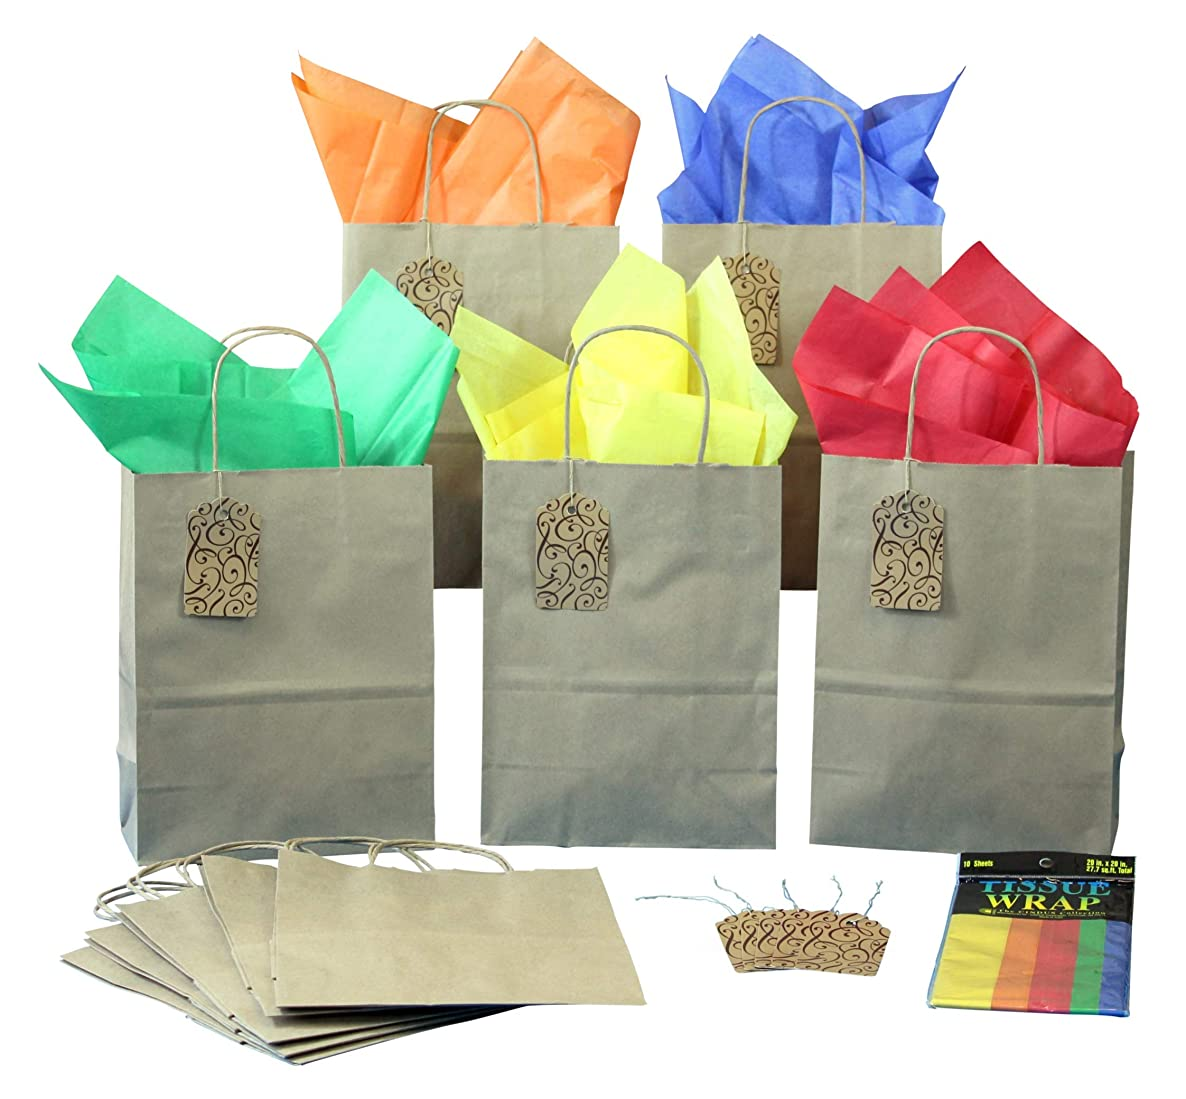 BagLove 10 Pack Gift Bags with Tissue Paper + Tags - Medium Size Bags with Handles (8